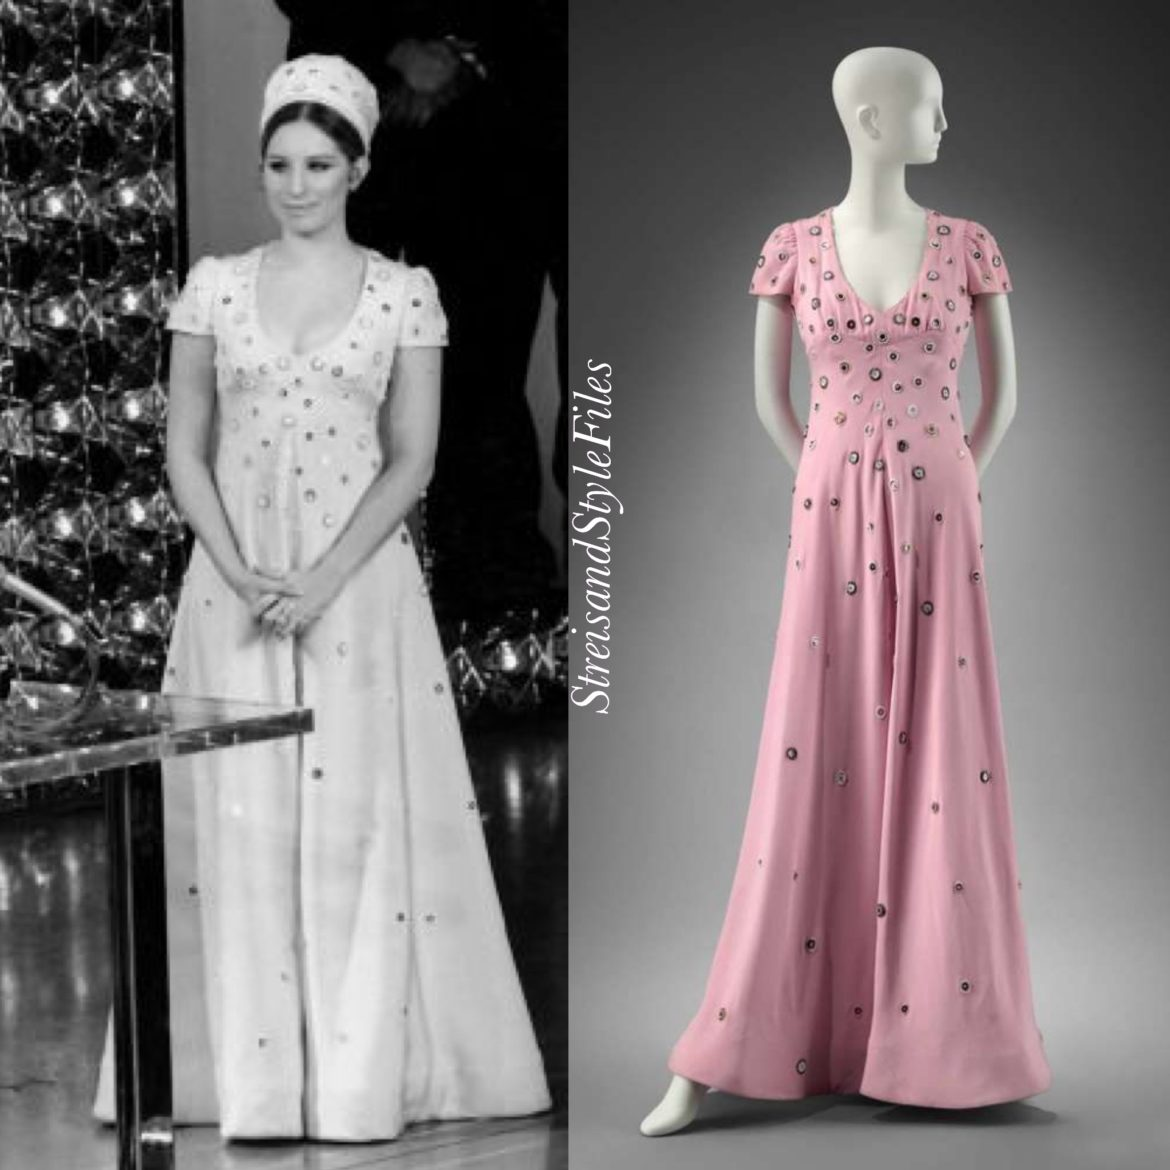 1970 Academy Awards pink gown and pillbox hat by Scaasi